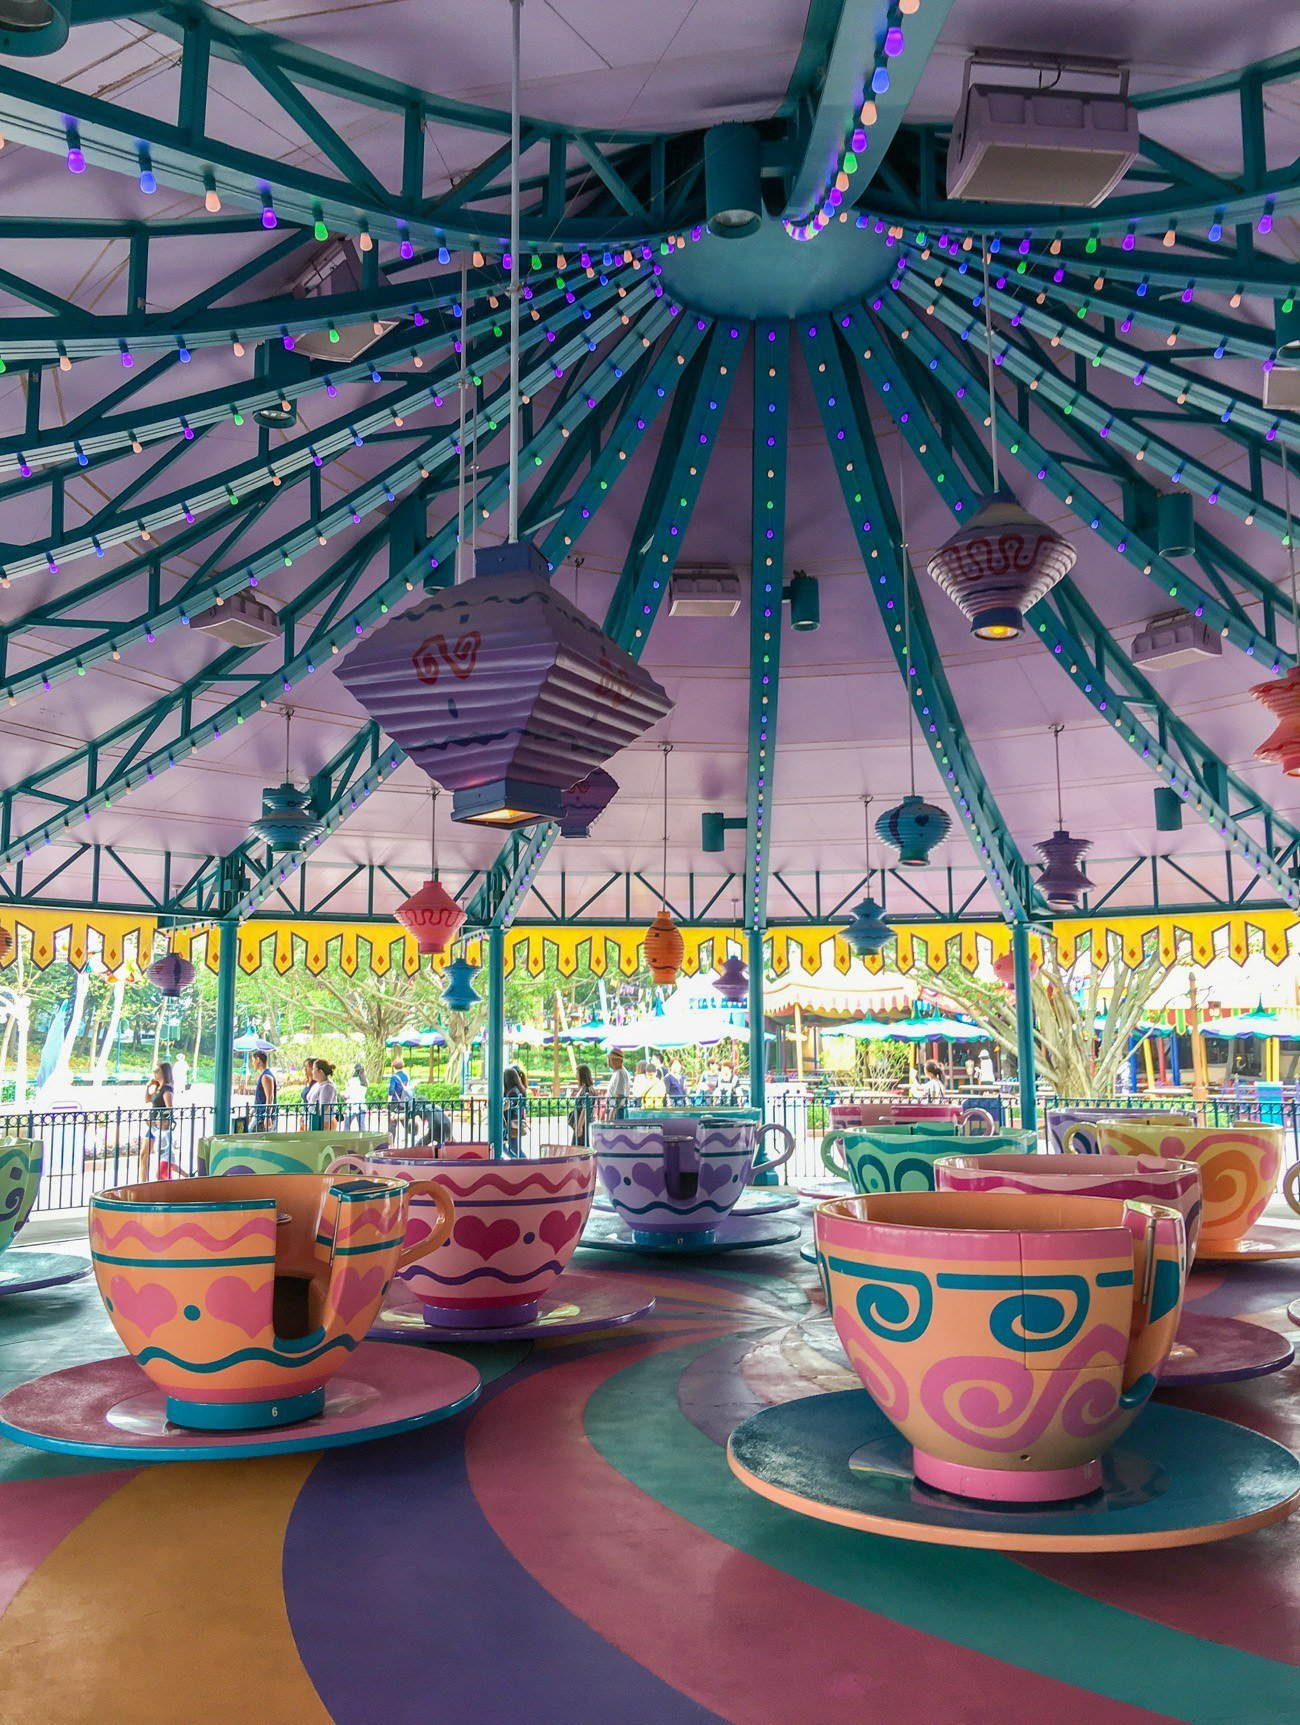 The Mad Hatter Tea Cups at Hong Kong Disneyland